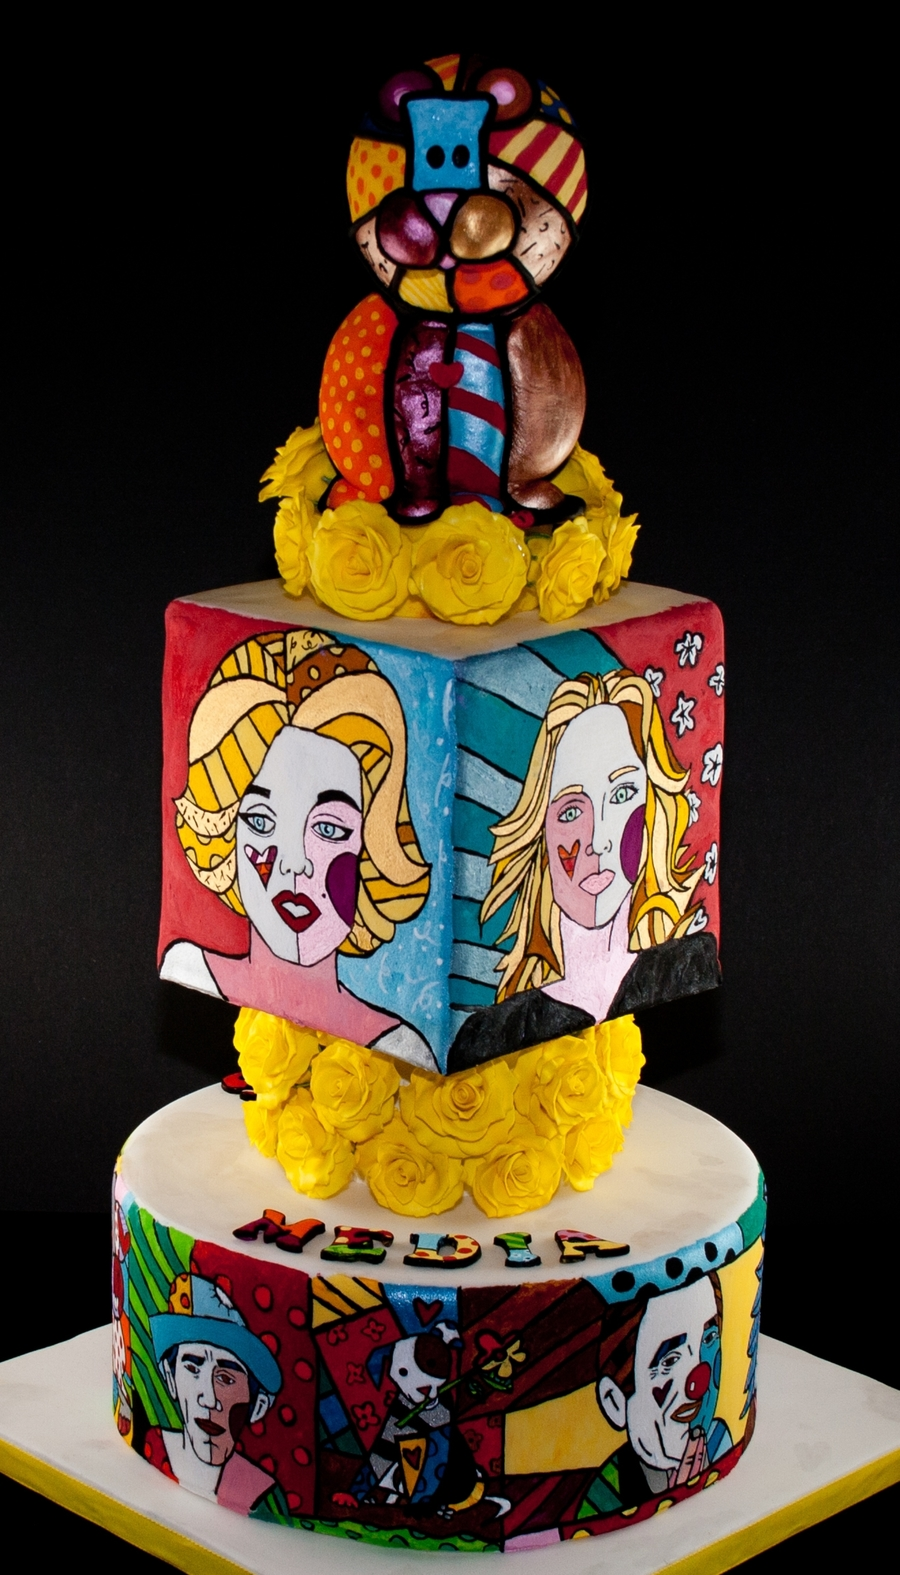 Andy Warhol Birthday Cake